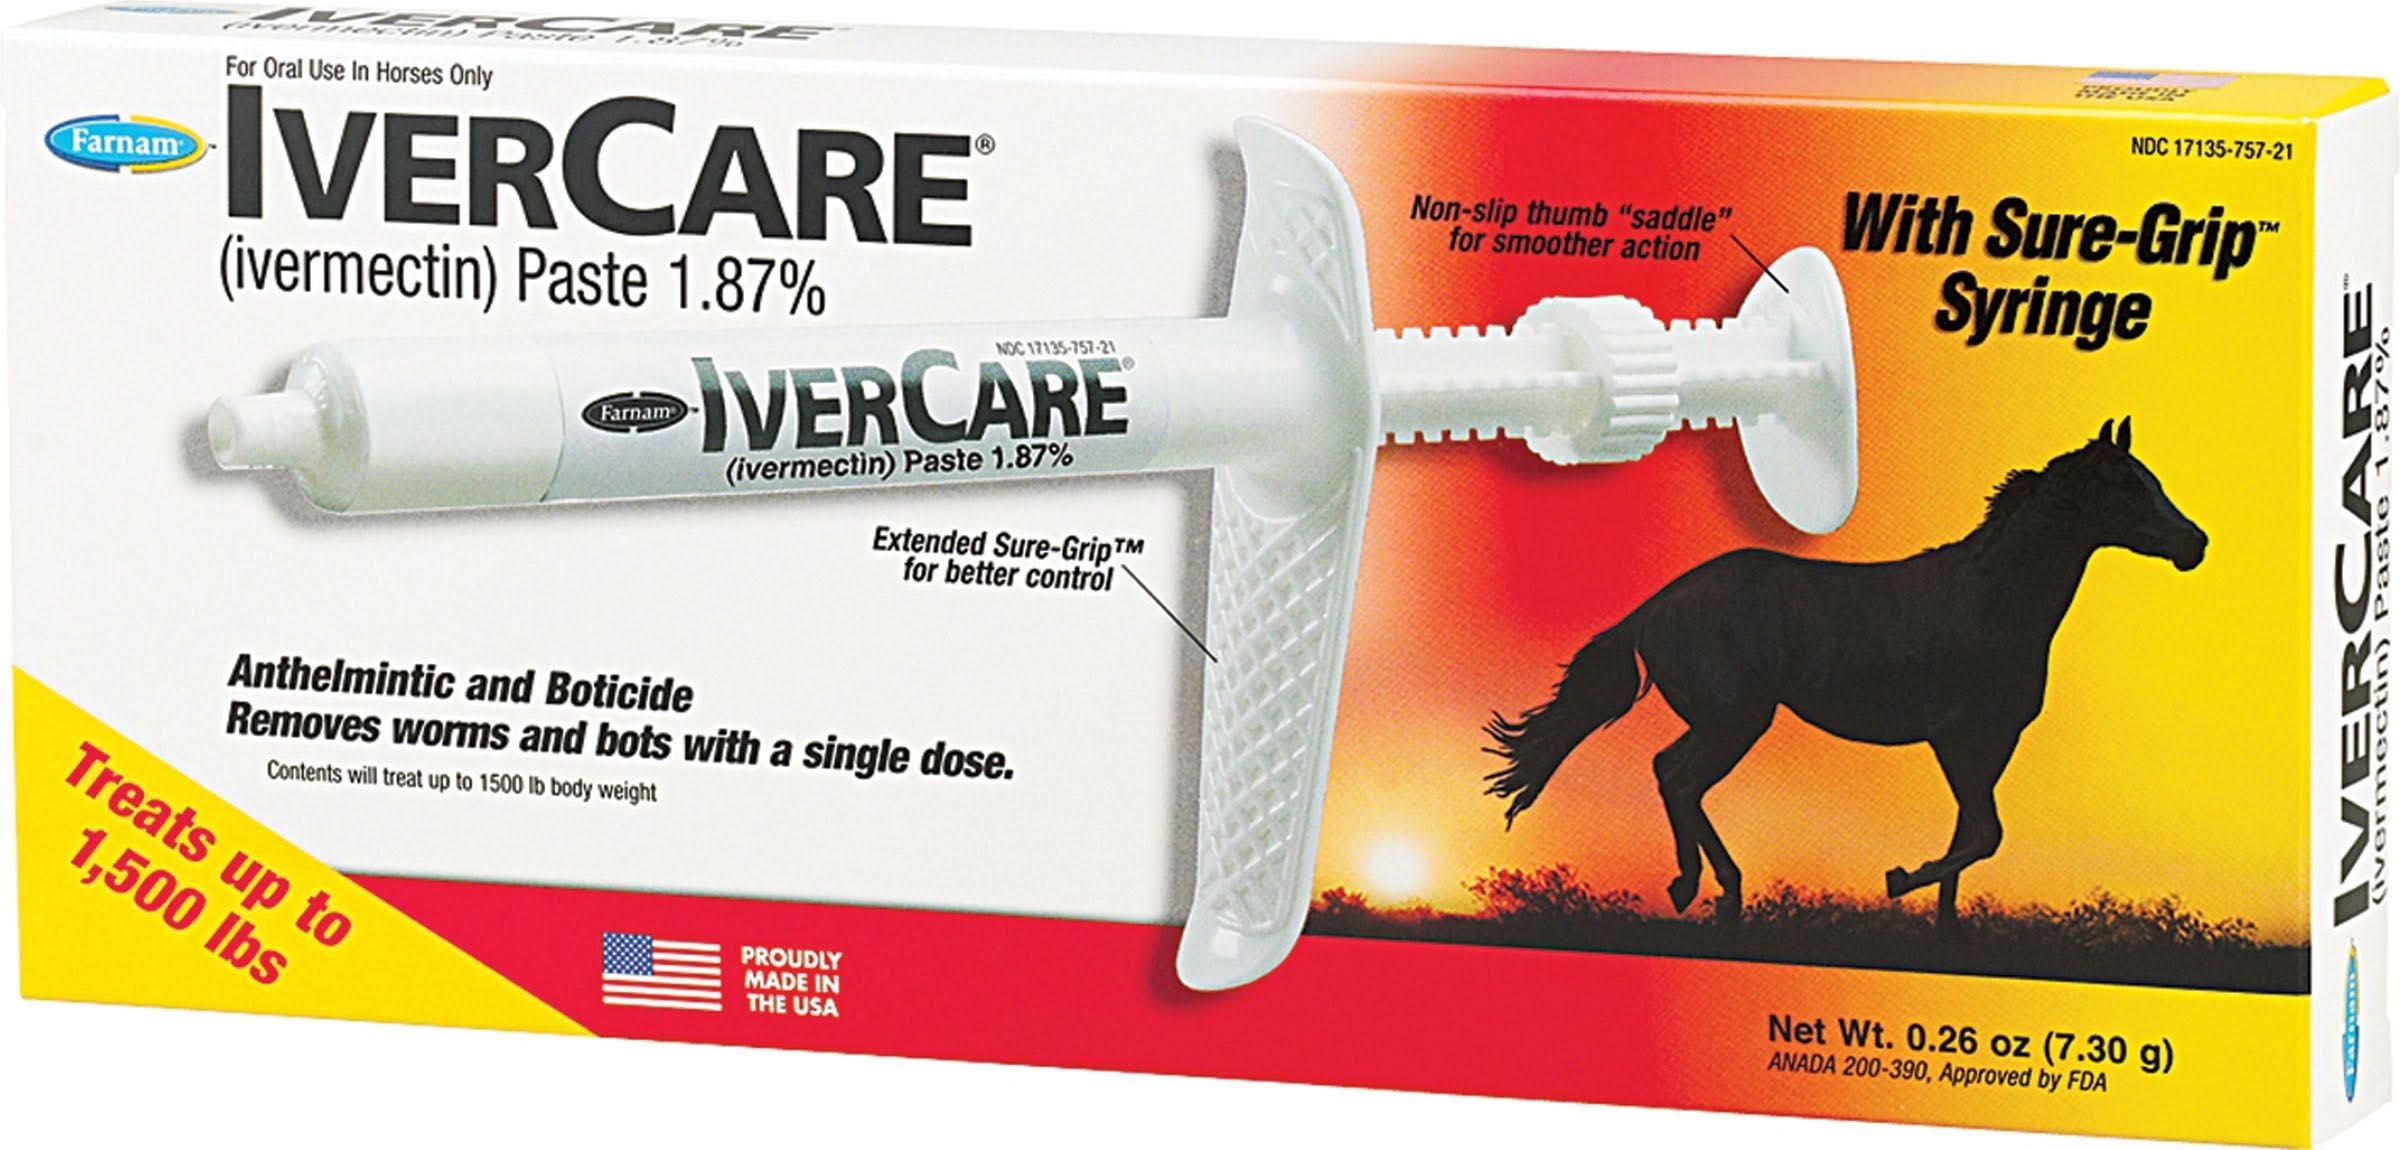 Farnman Ivercare Equine Dewormer Paste